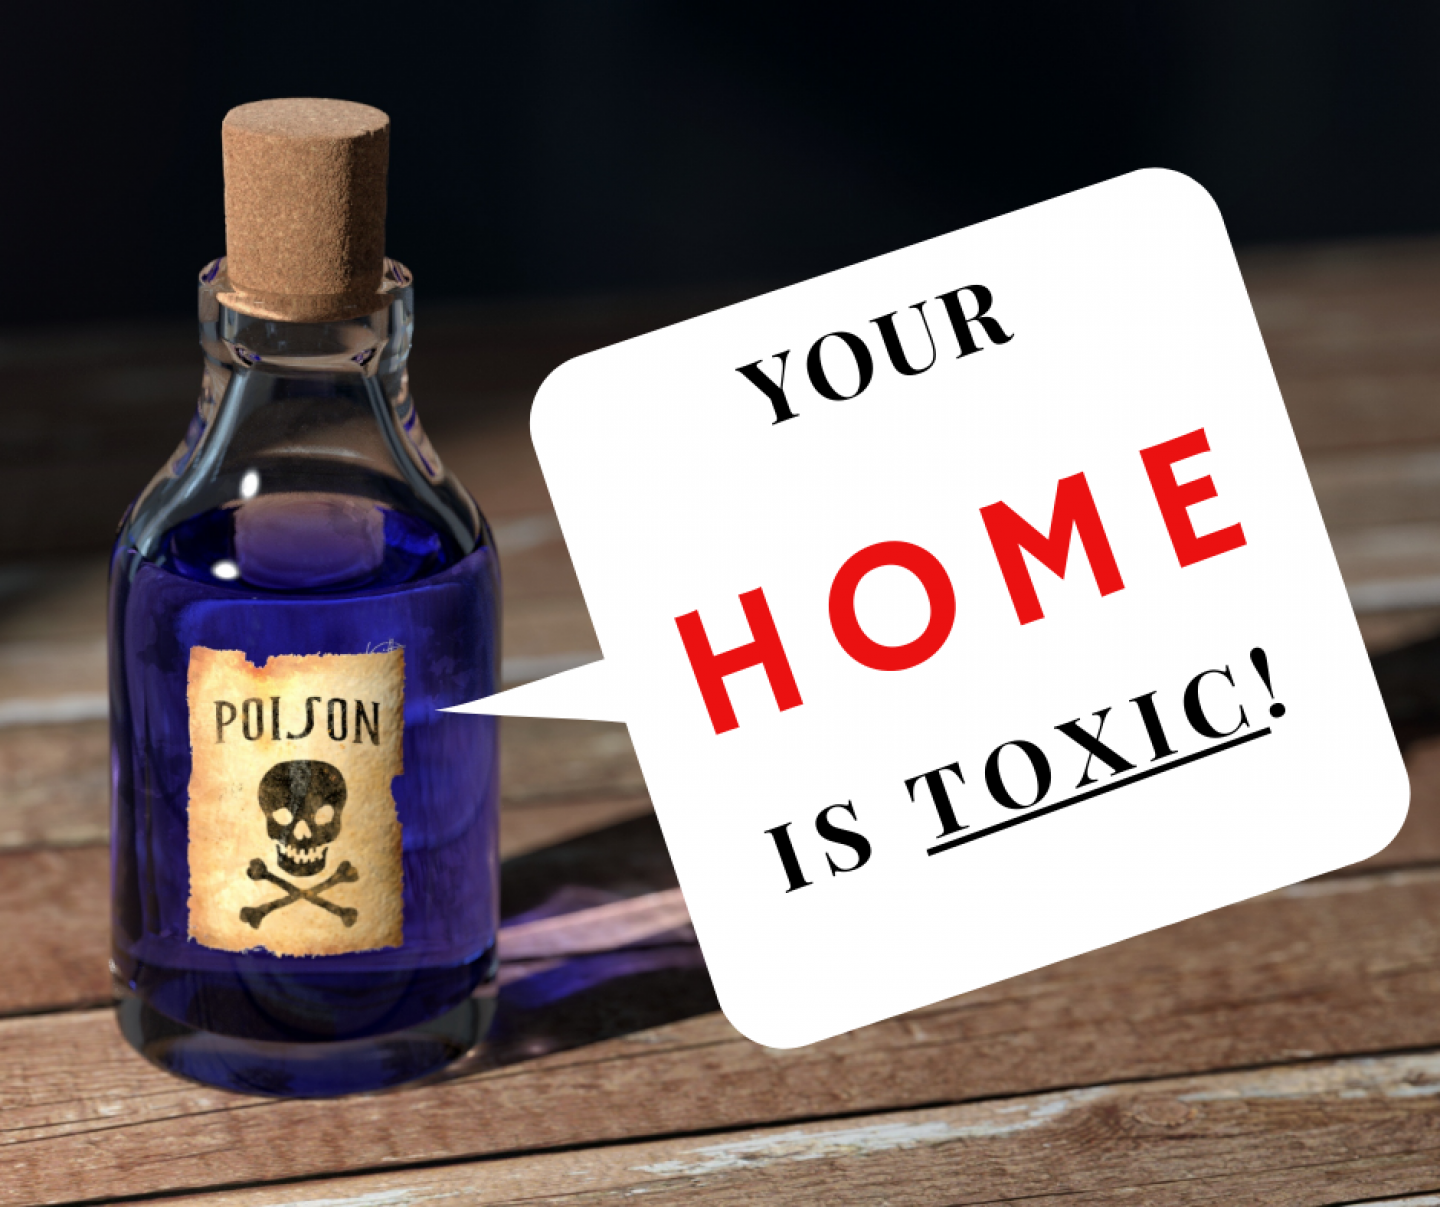 Your home is toxic